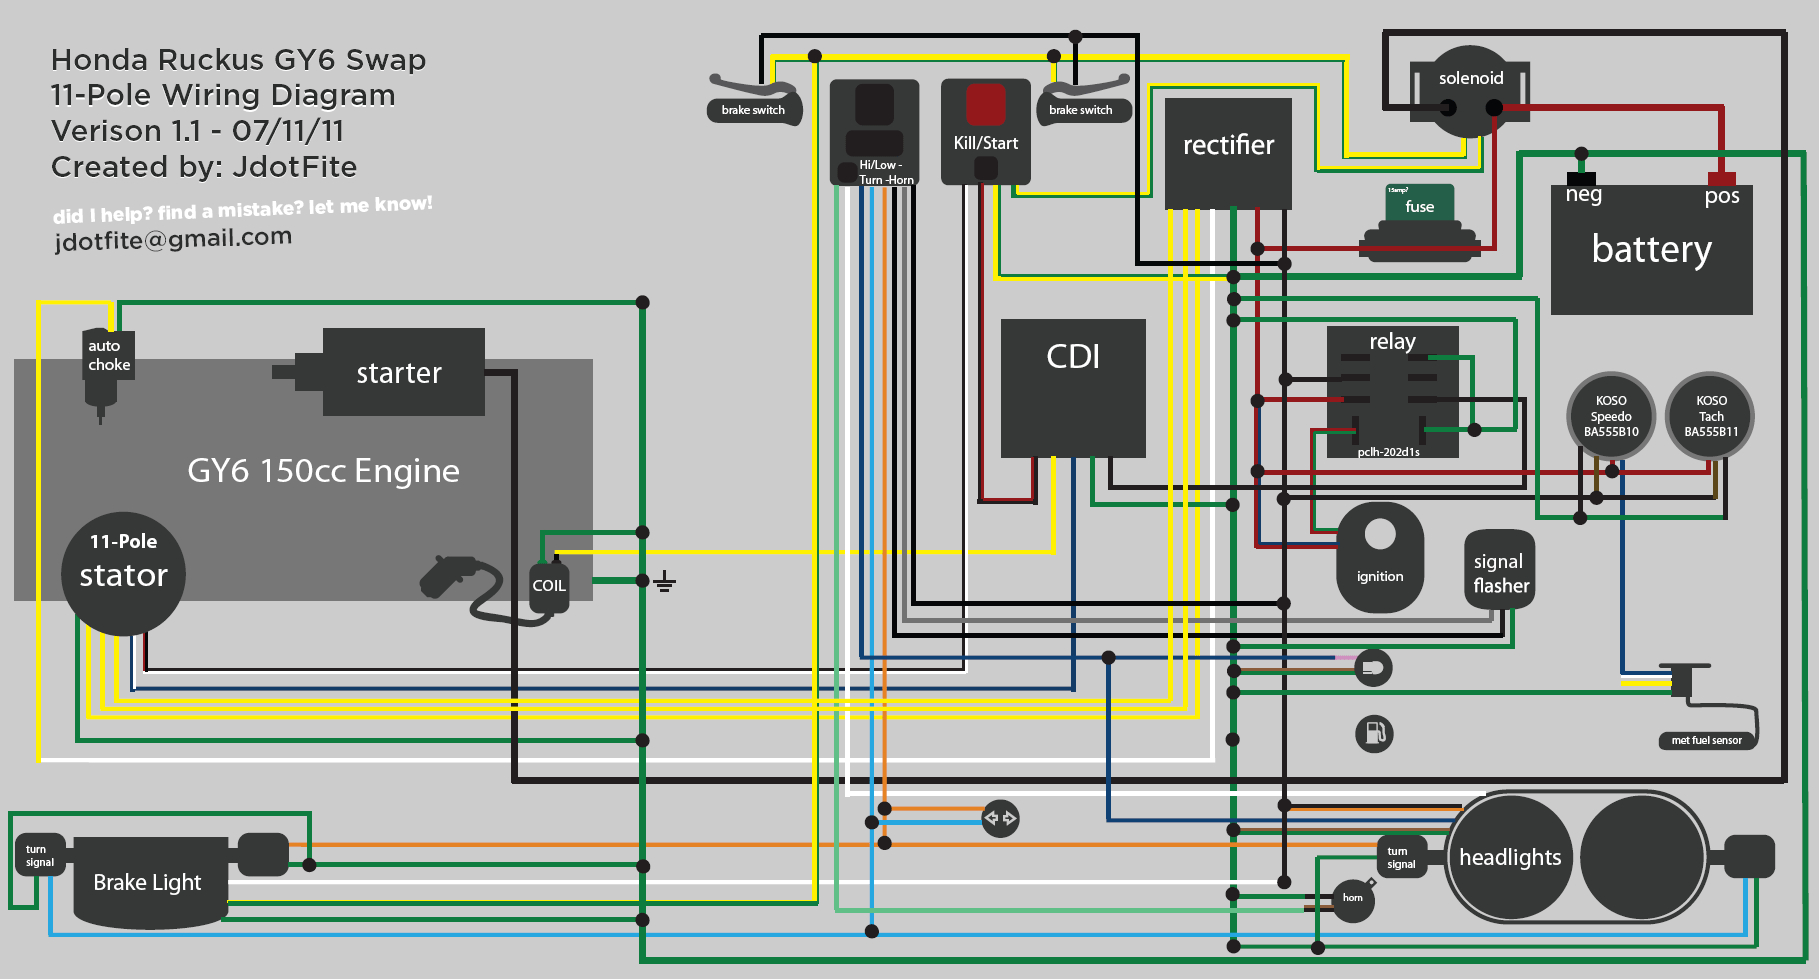 Download: Schwinn S180 Wiring Diagram At Marks Web Of Books And - 110Cc Chinese Atv Wiring Diagram